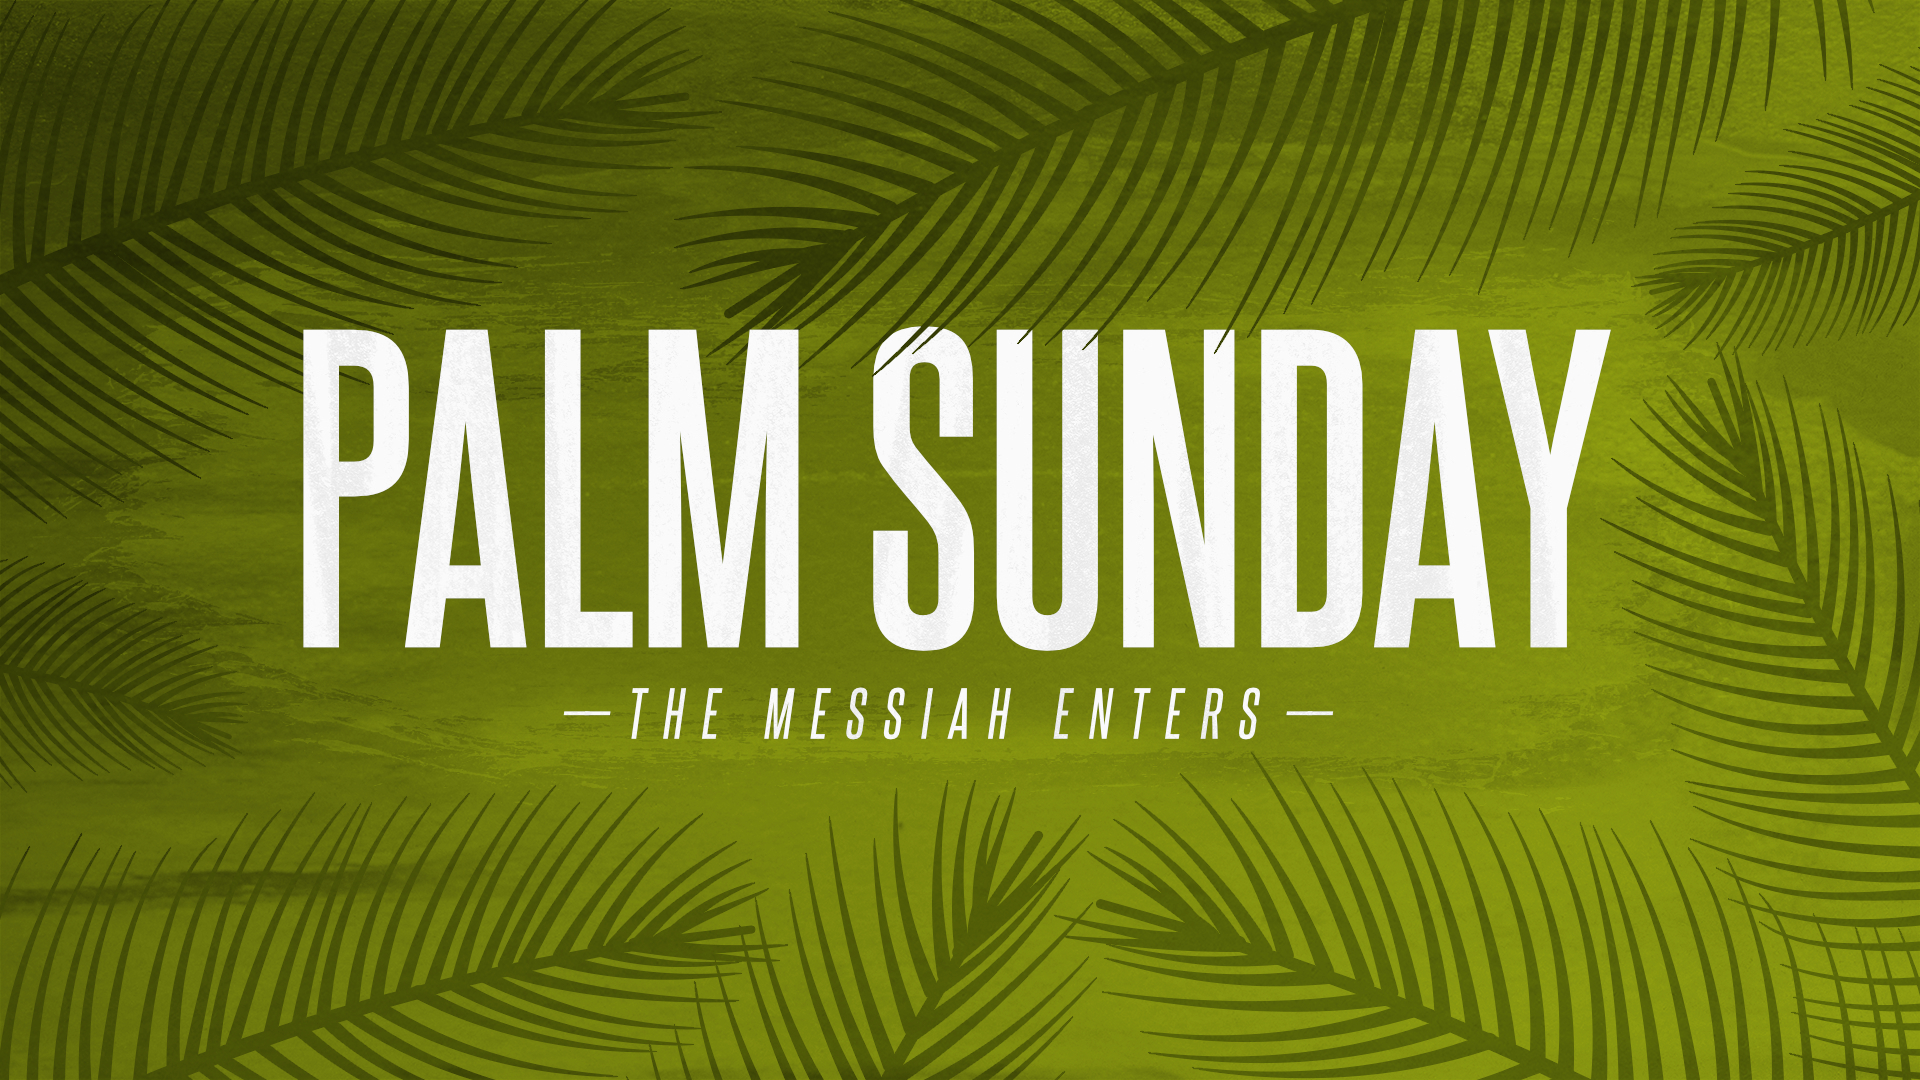 Palm Sunday - The Messiah Enters • April 9, 2017